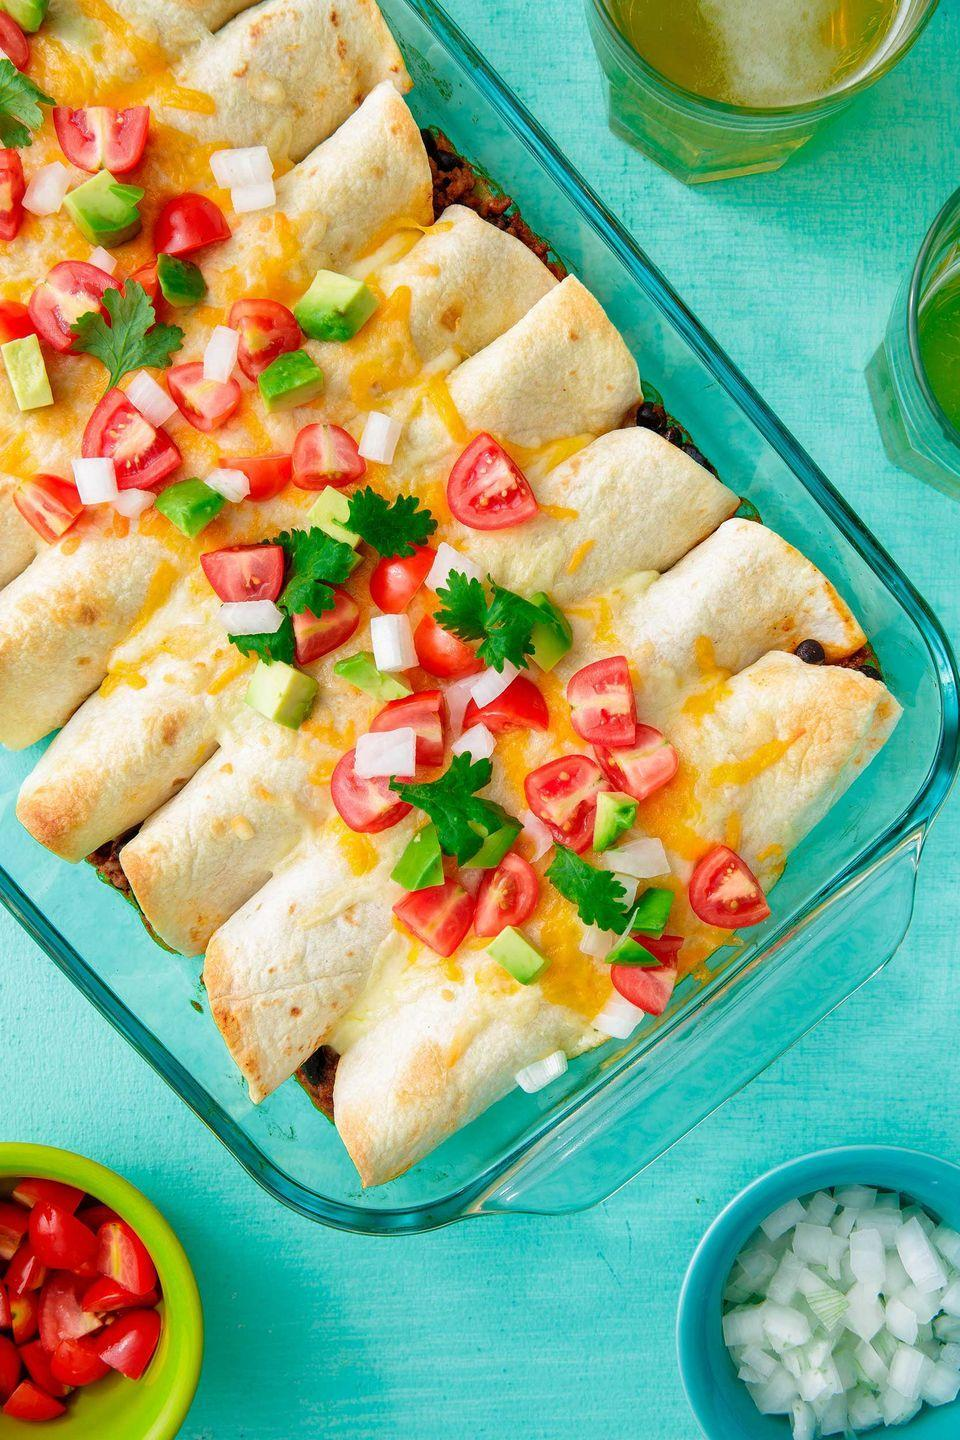 "<p>These go great with our <a href=""https://www.delish.com/entertaining/recipes/a43238/jarritos-margaritas-recipe/"" rel=""nofollow noopener"" target=""_blank"" data-ylk=""slk:Jarritos Margaritas"" class=""link rapid-noclick-resp"">Jarritos Margaritas</a>, FYI. 😉</p><p>Get the recipe from <a href=""https://www.delish.com/cooking/recipe-ideas/a22790411/beef-enchiladas-recipe/"" rel=""nofollow noopener"" target=""_blank"" data-ylk=""slk:Delish"" class=""link rapid-noclick-resp"">Delish</a>.</p>"